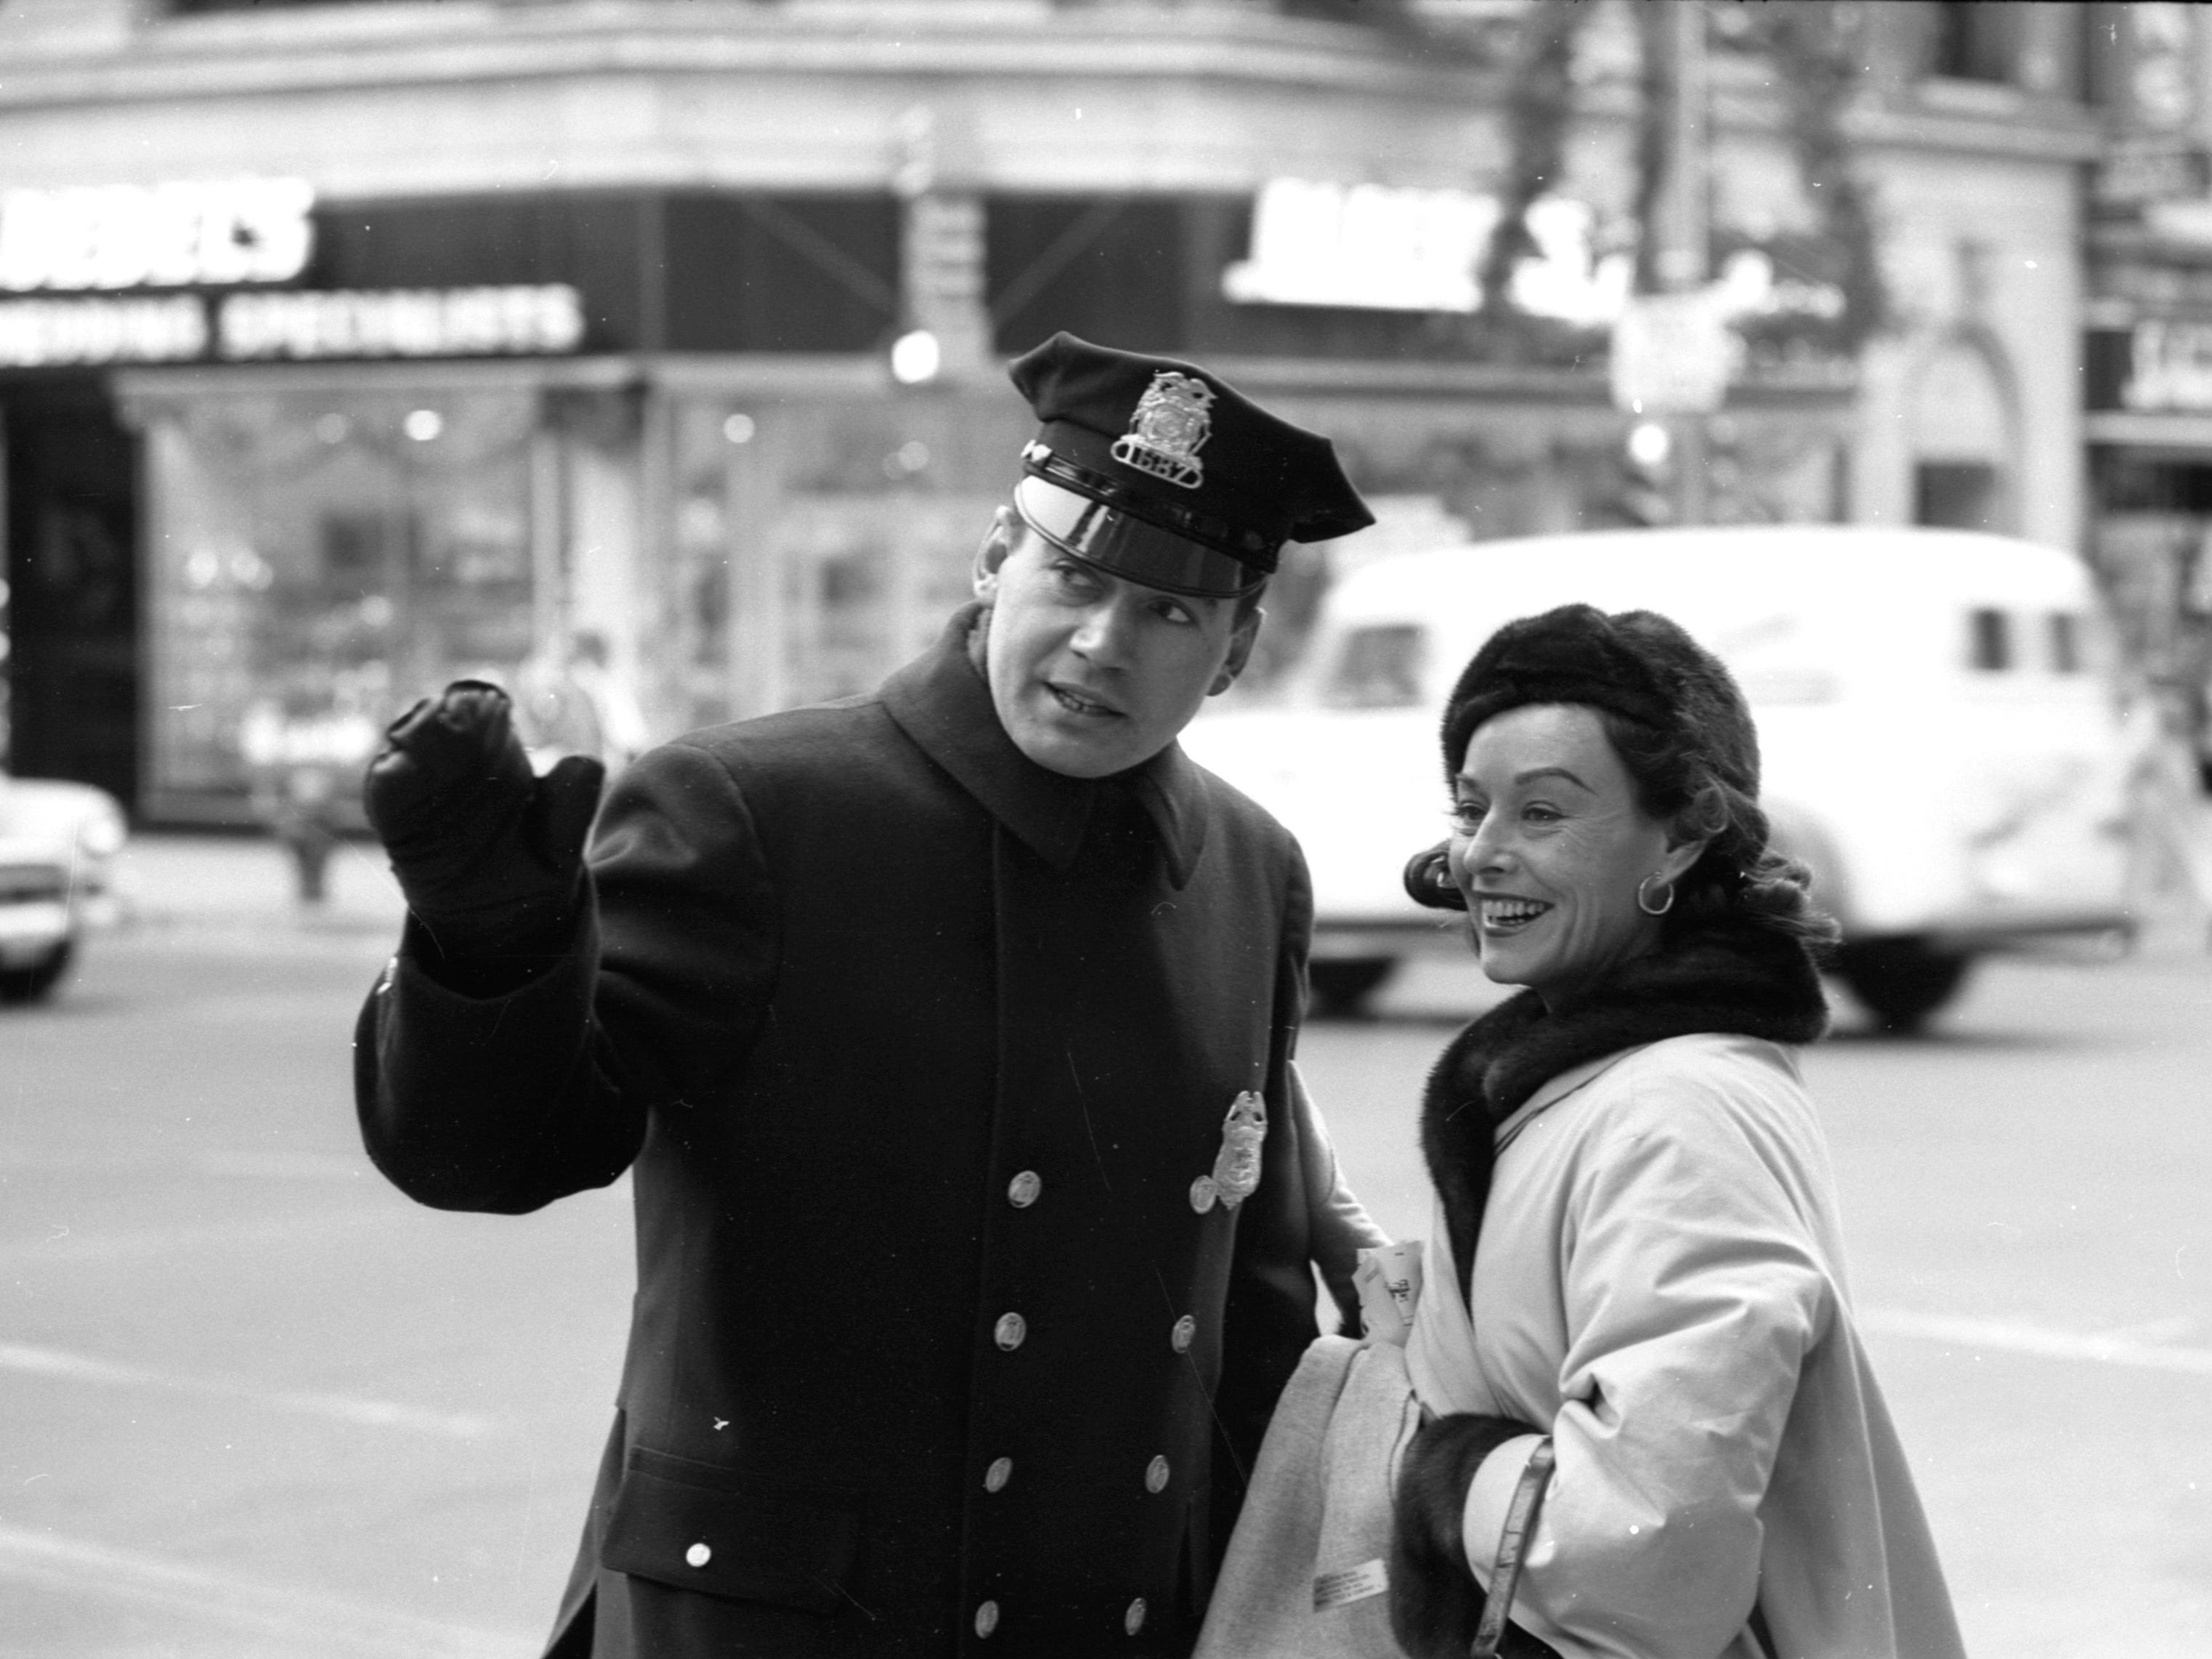 "Actress Paulette Goddard asks Milwaukee police officer Leland Sande for directions on W. Wisconsin Ave. on Dec. 3, 1957. Goddard, whose Hollywood credits included the Chaplin movies ""Modern Times"" and ""The Great Dictator"" and the World War II drama ""So Proudly We Hail,"" was in town to perform in the comedy ""Waltz of the Toreadors"" with Melvyn Douglas at the Pabst Theater. This photo was published in the Dec. 4, 1957, Milwaukee Journal."